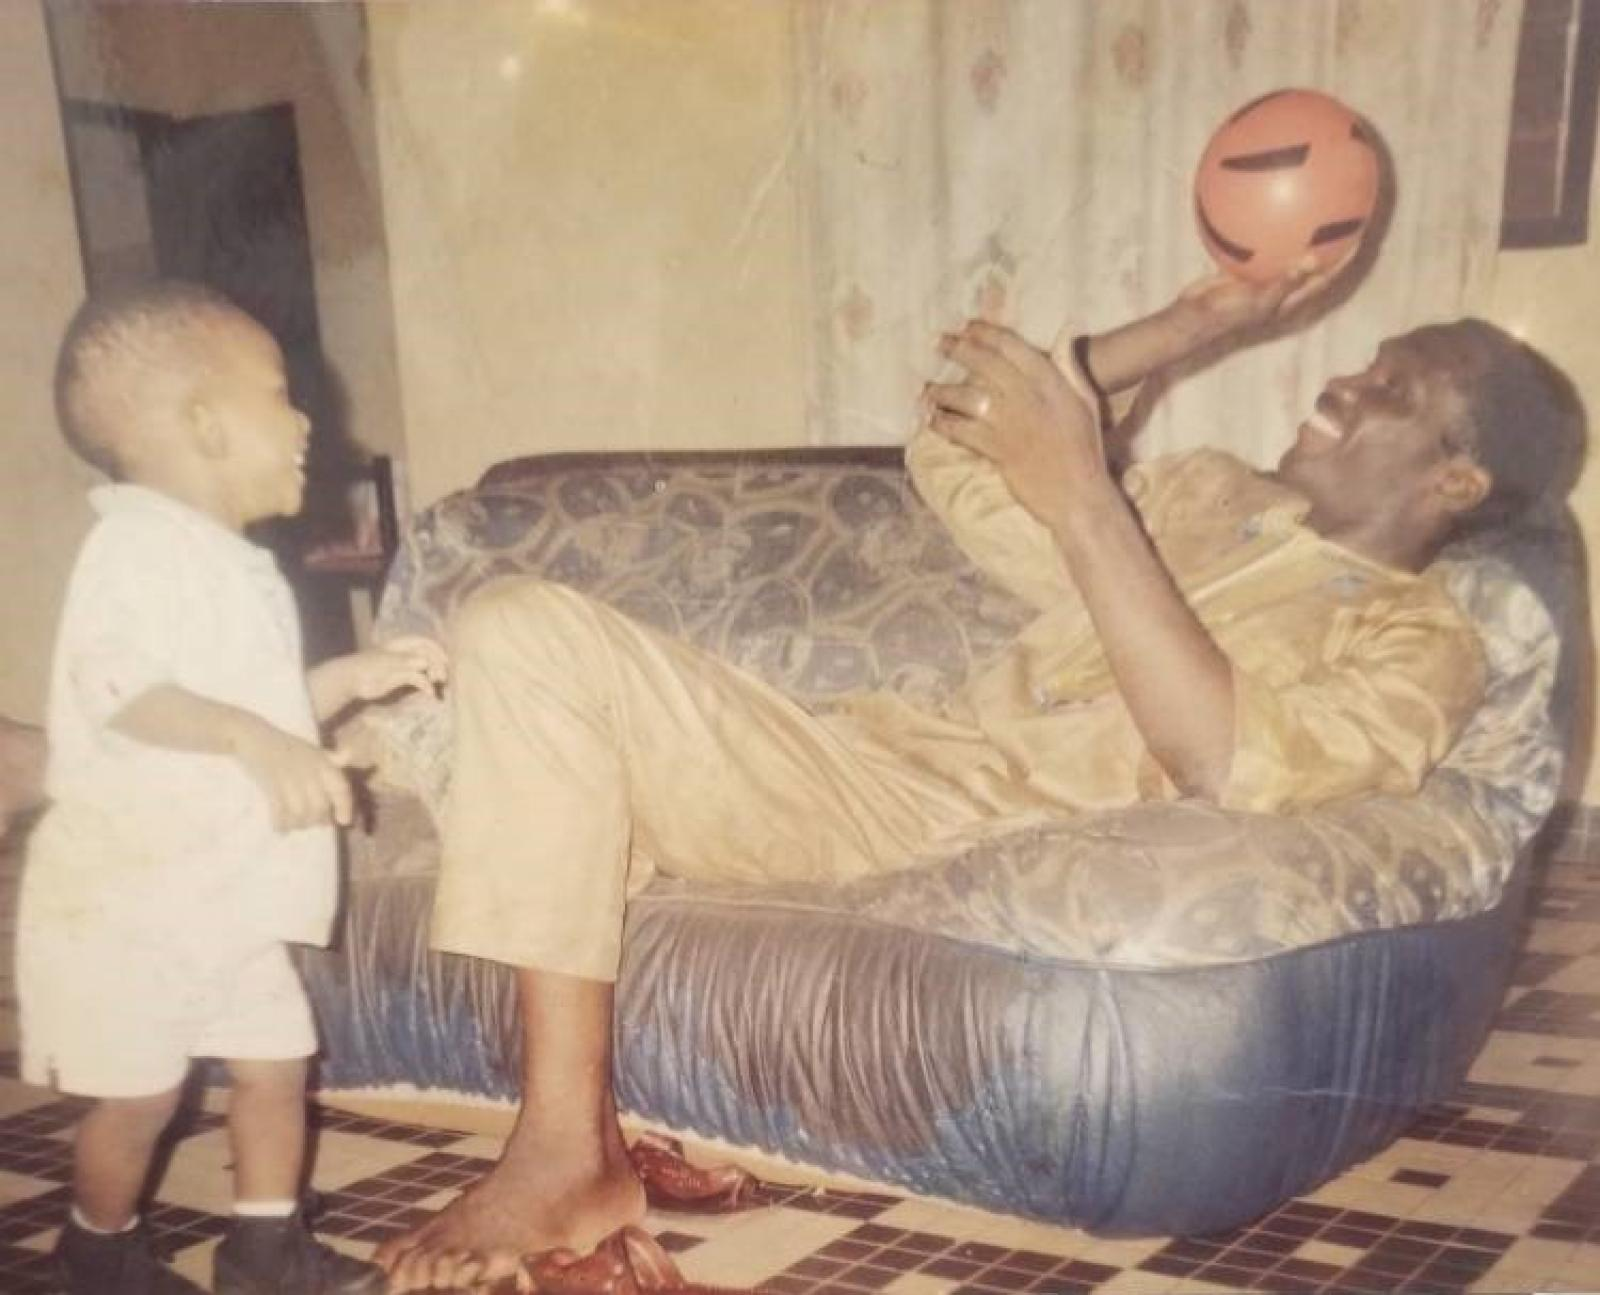 Joel playing with his father, Thomas Embiid